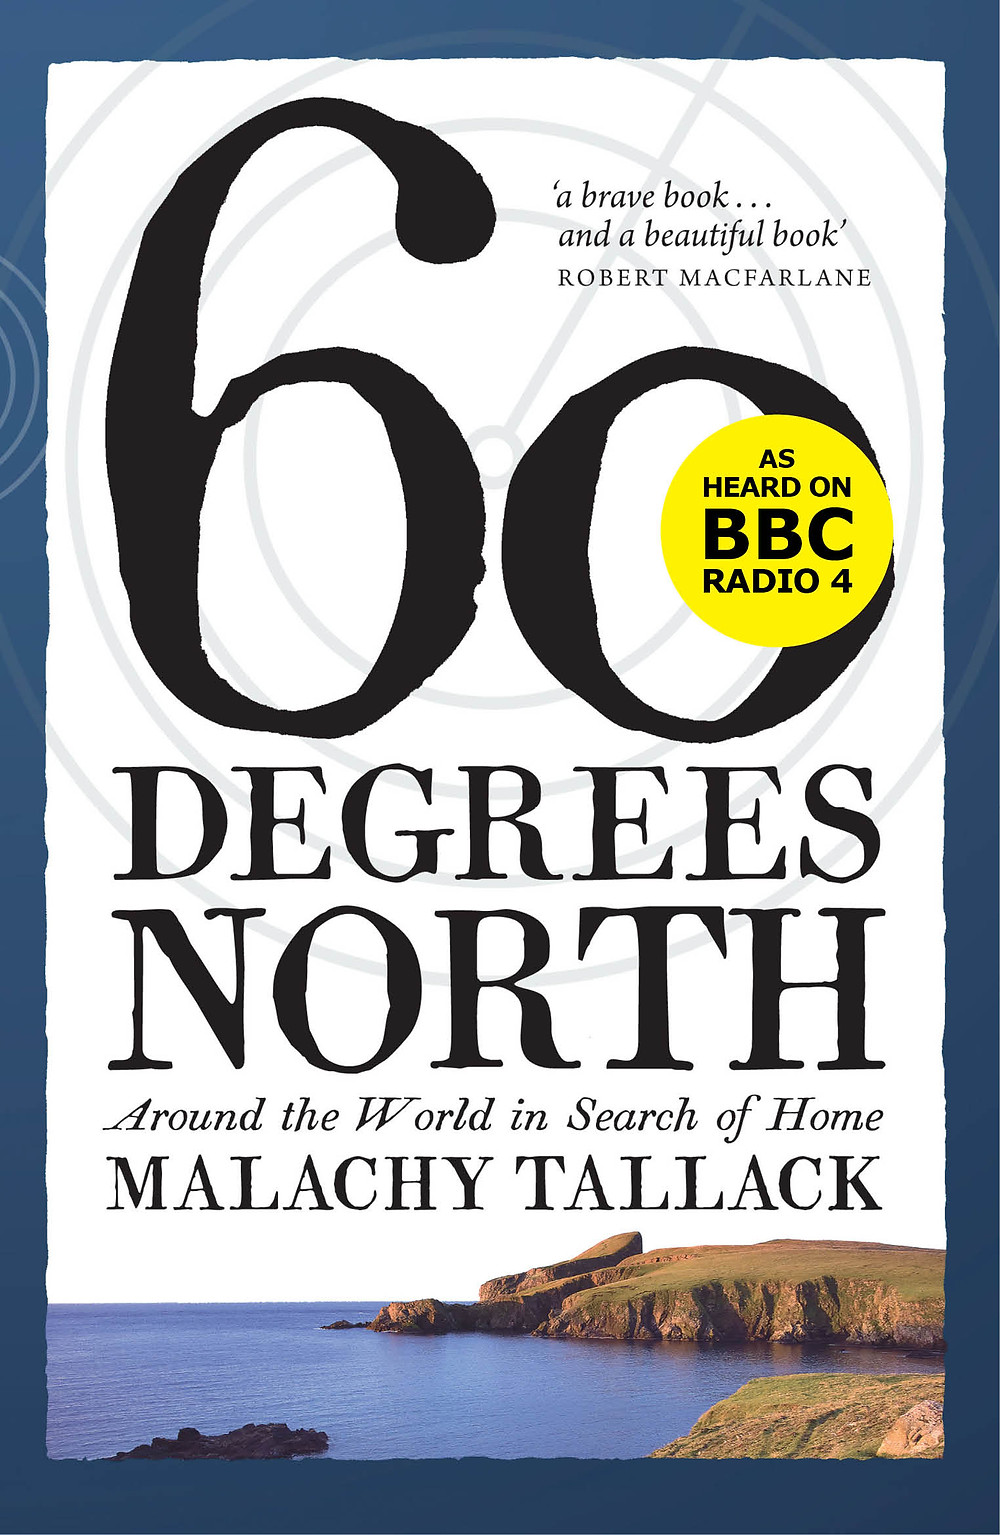 Sixty Degrees North, by Malachy Tallack